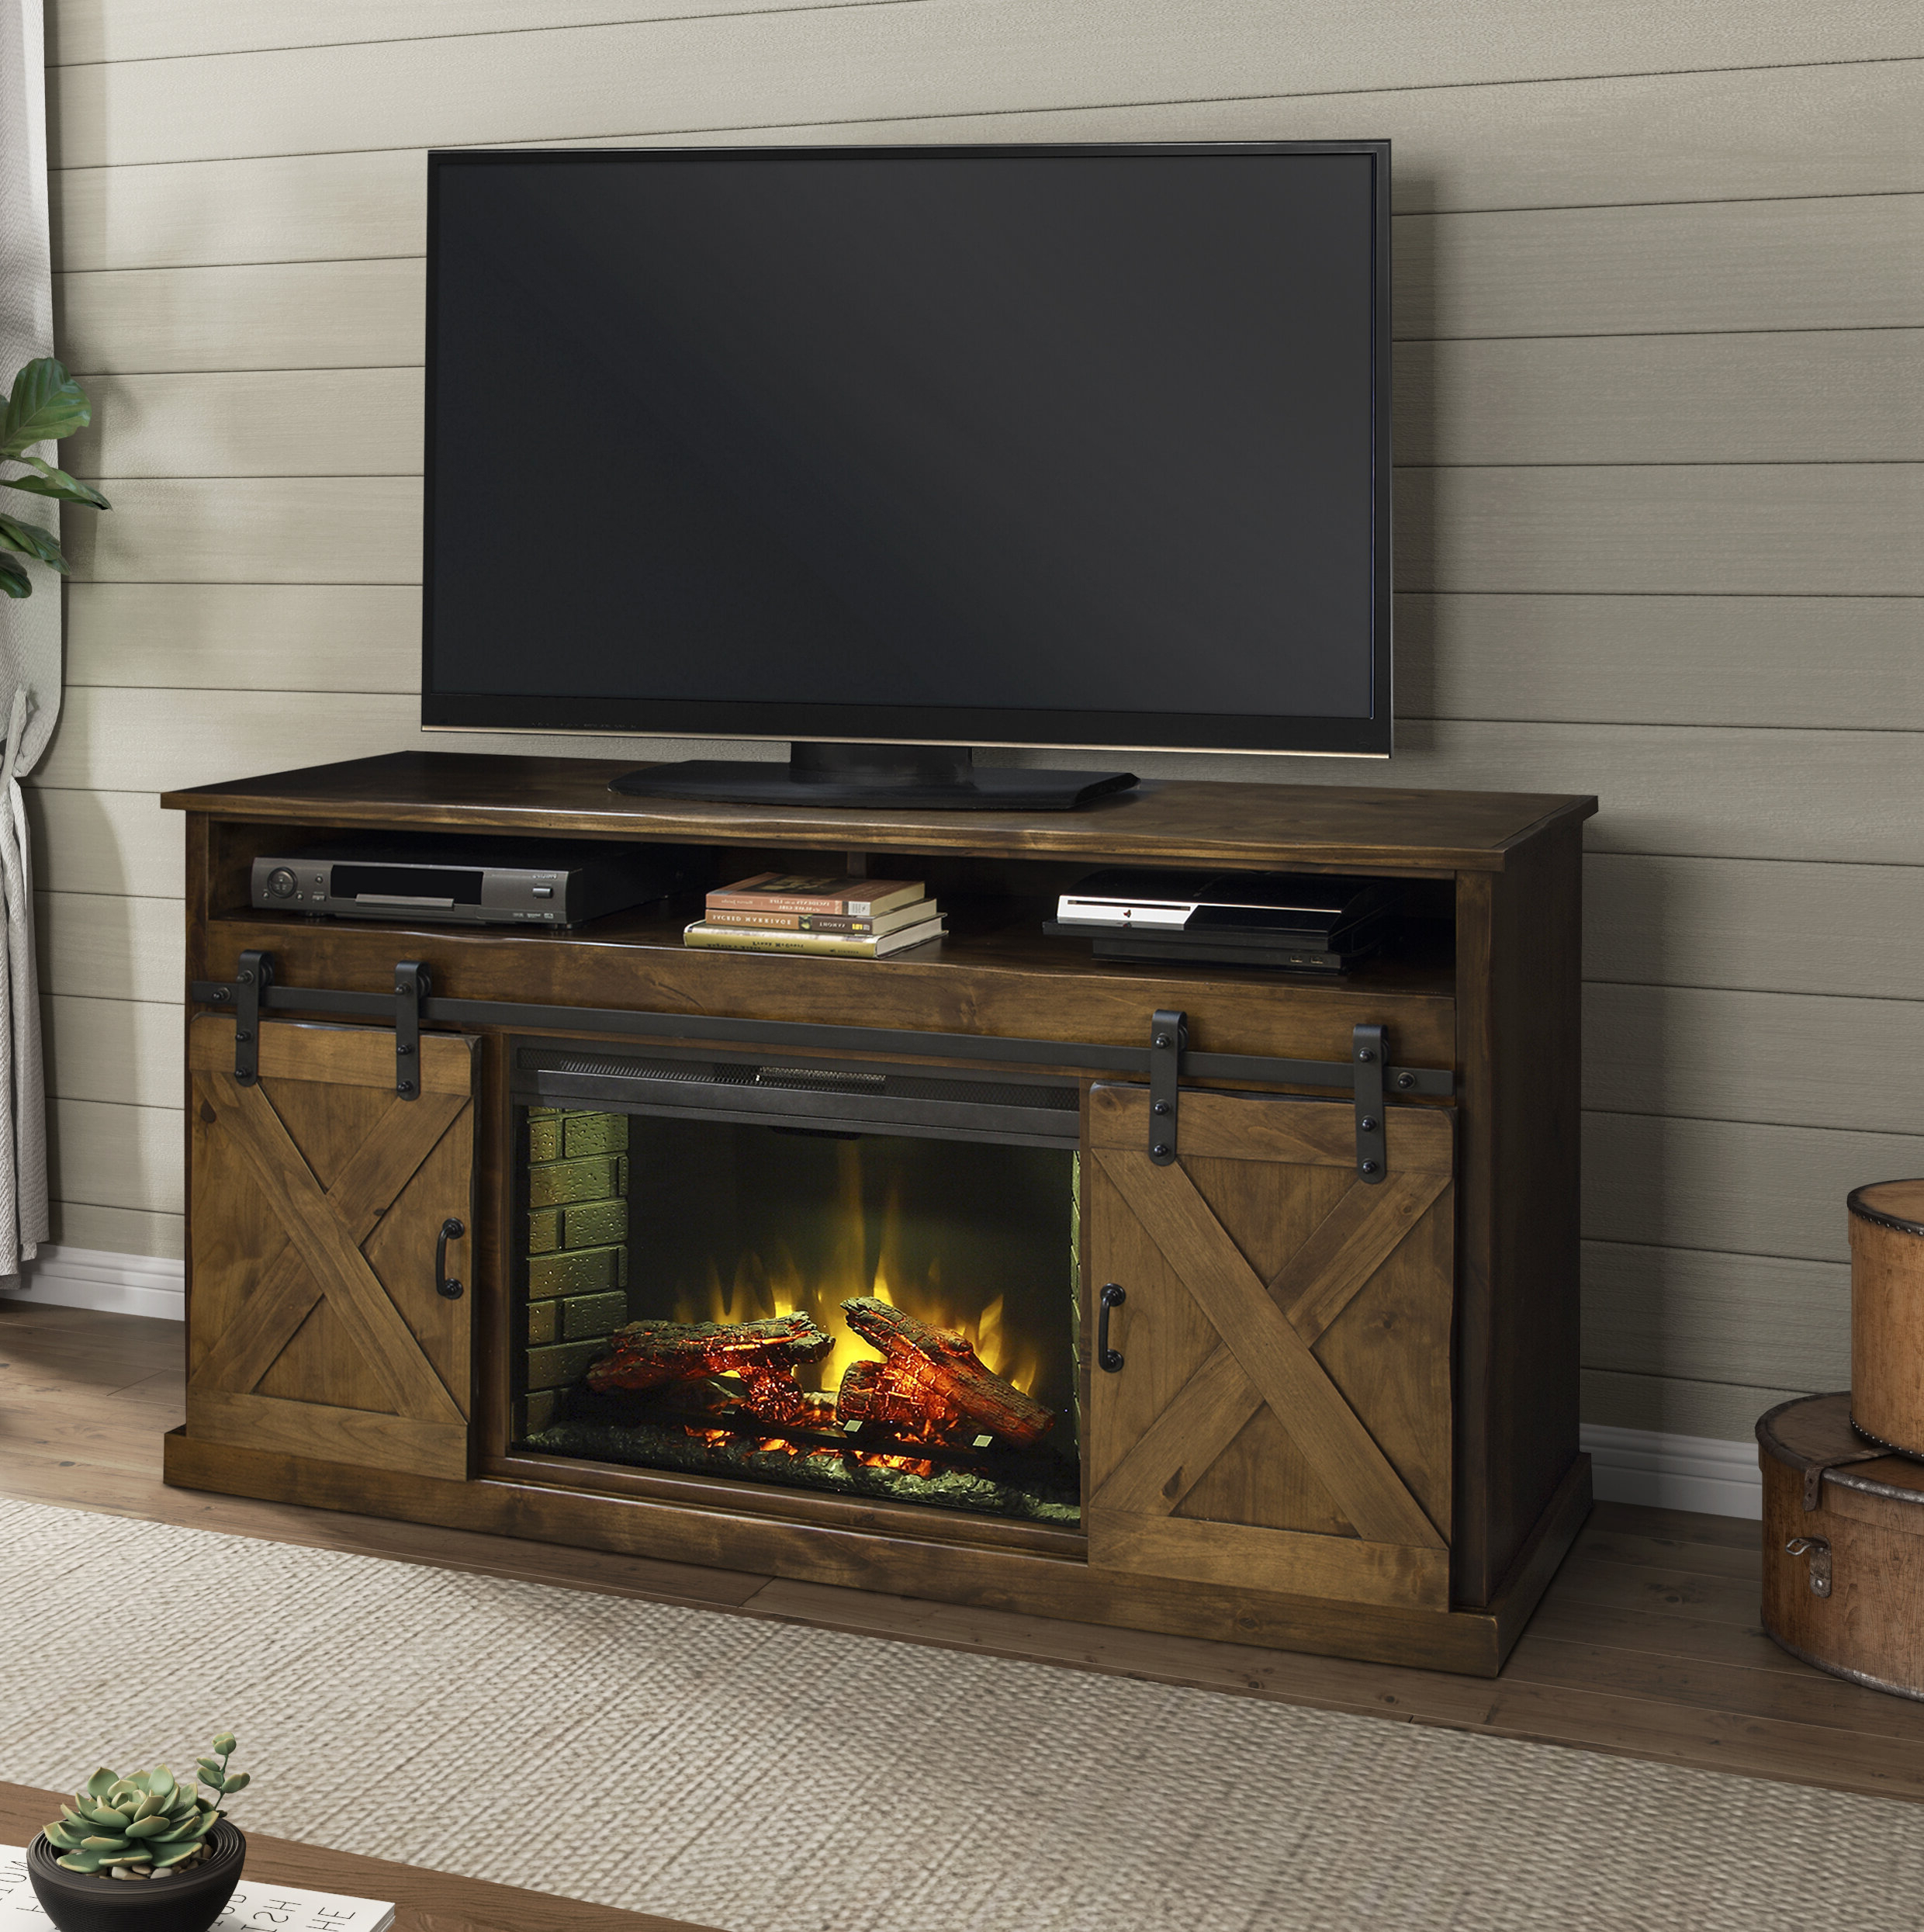 """Most Recent Jowers Tv Stands For Tvs Up To 65"""" Intended For 65 Inch Tv Stand With Fireplace (View 11 of 25)"""